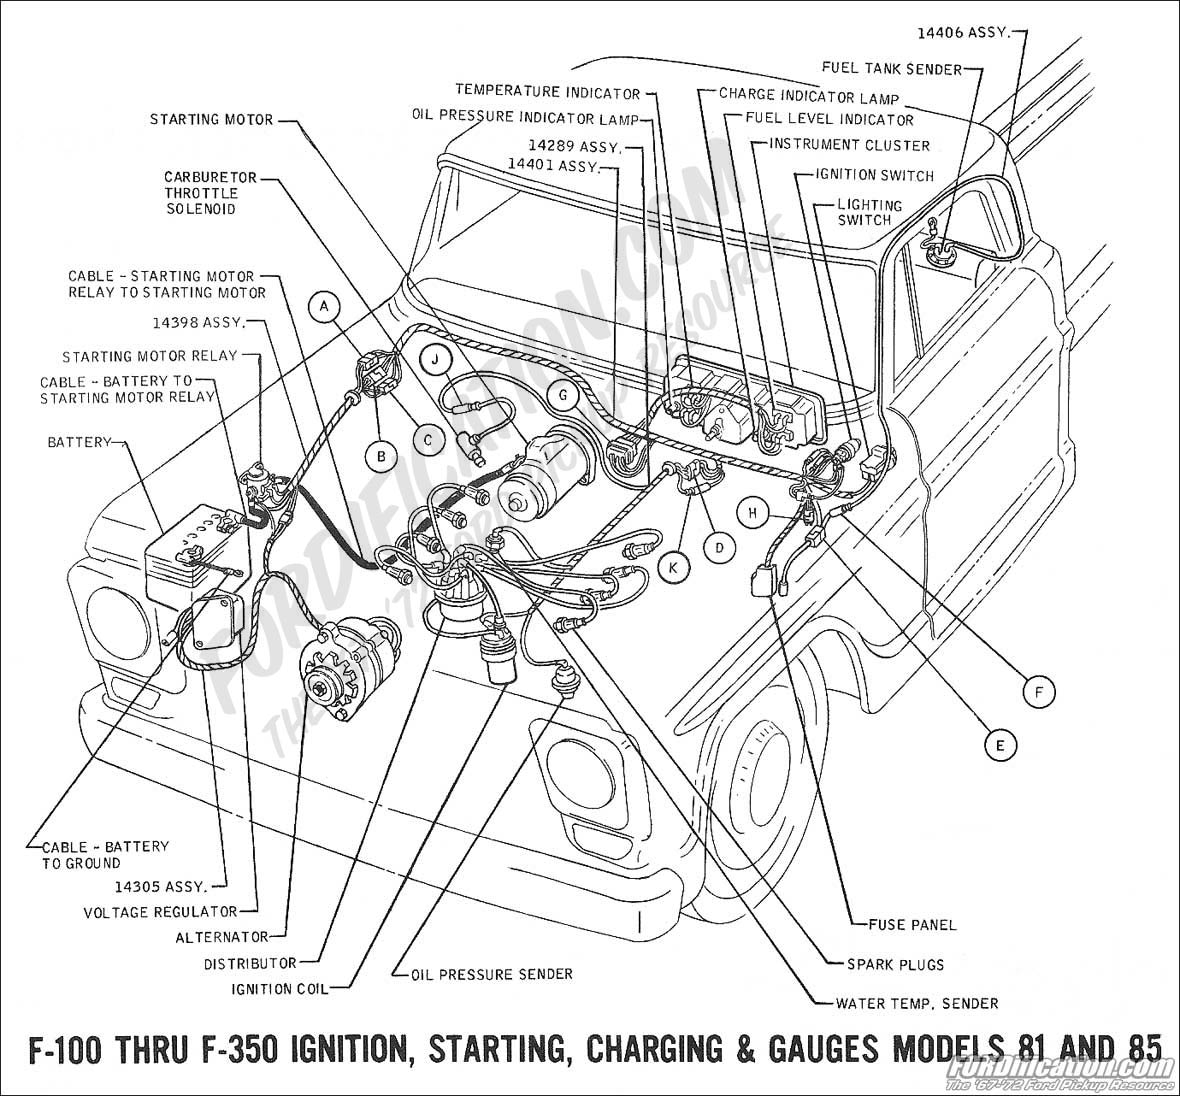 1969 f-100 thru f-350 ignition, charging, starting, and gauges - 01